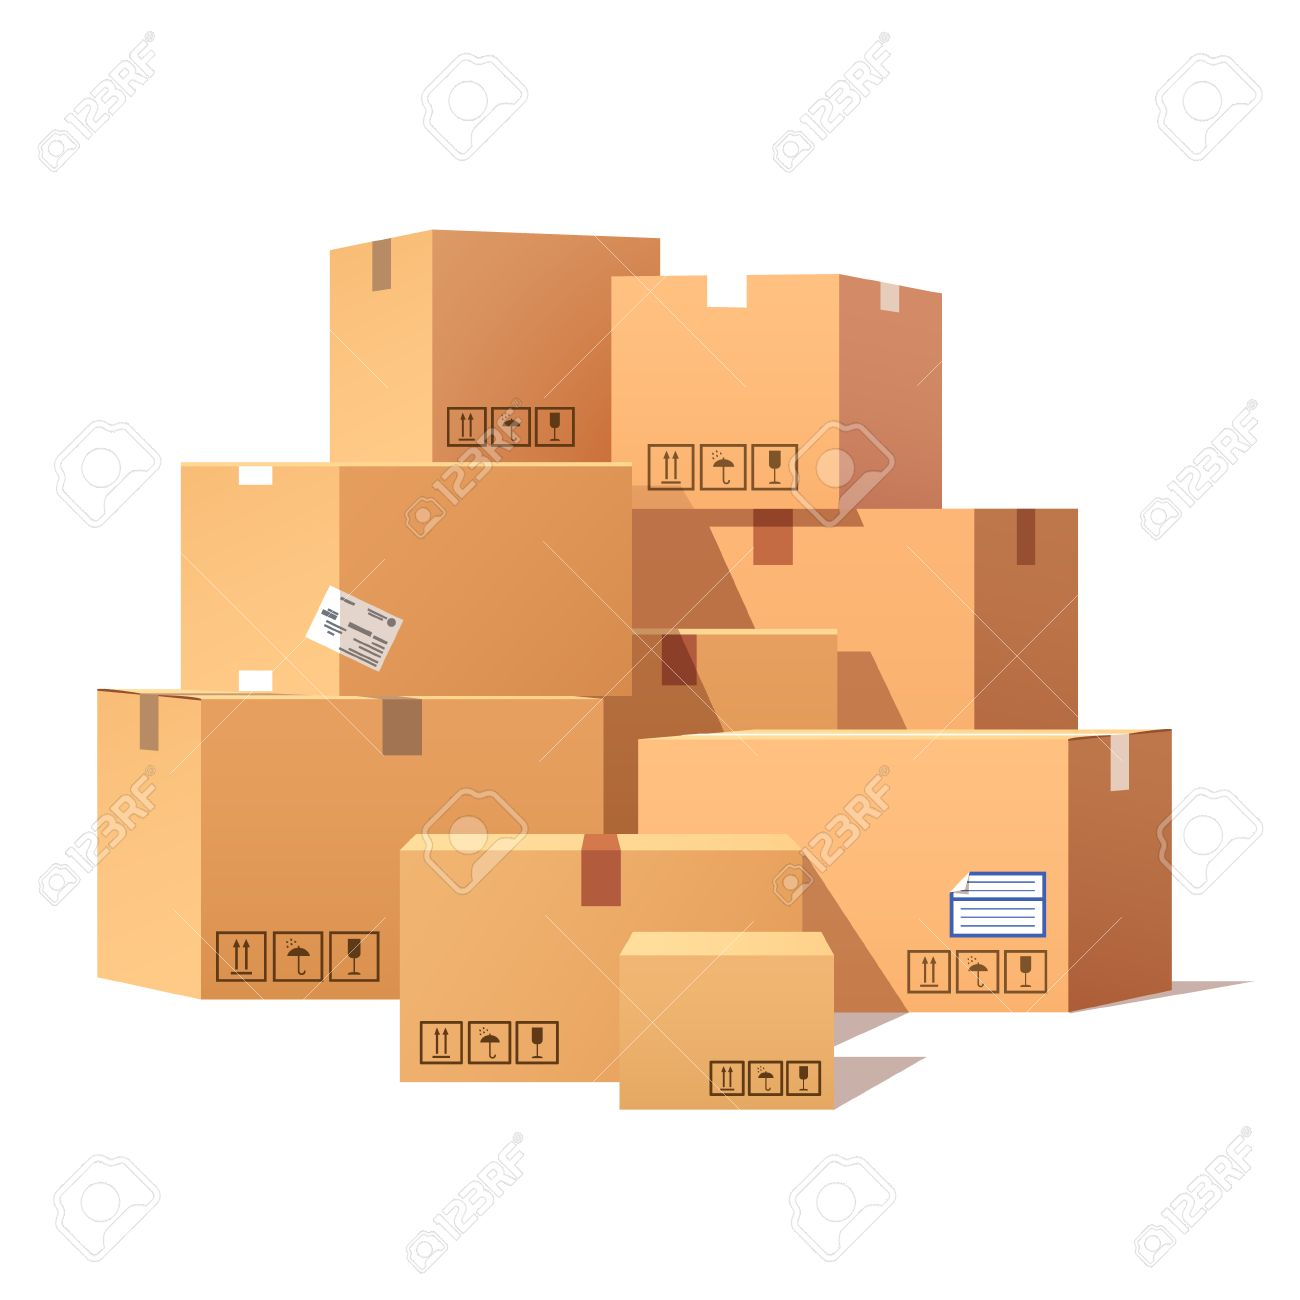 Pile of stacked sealed goods cardboard boxes. Flat style vector illustration isolated on white background. - 52901900